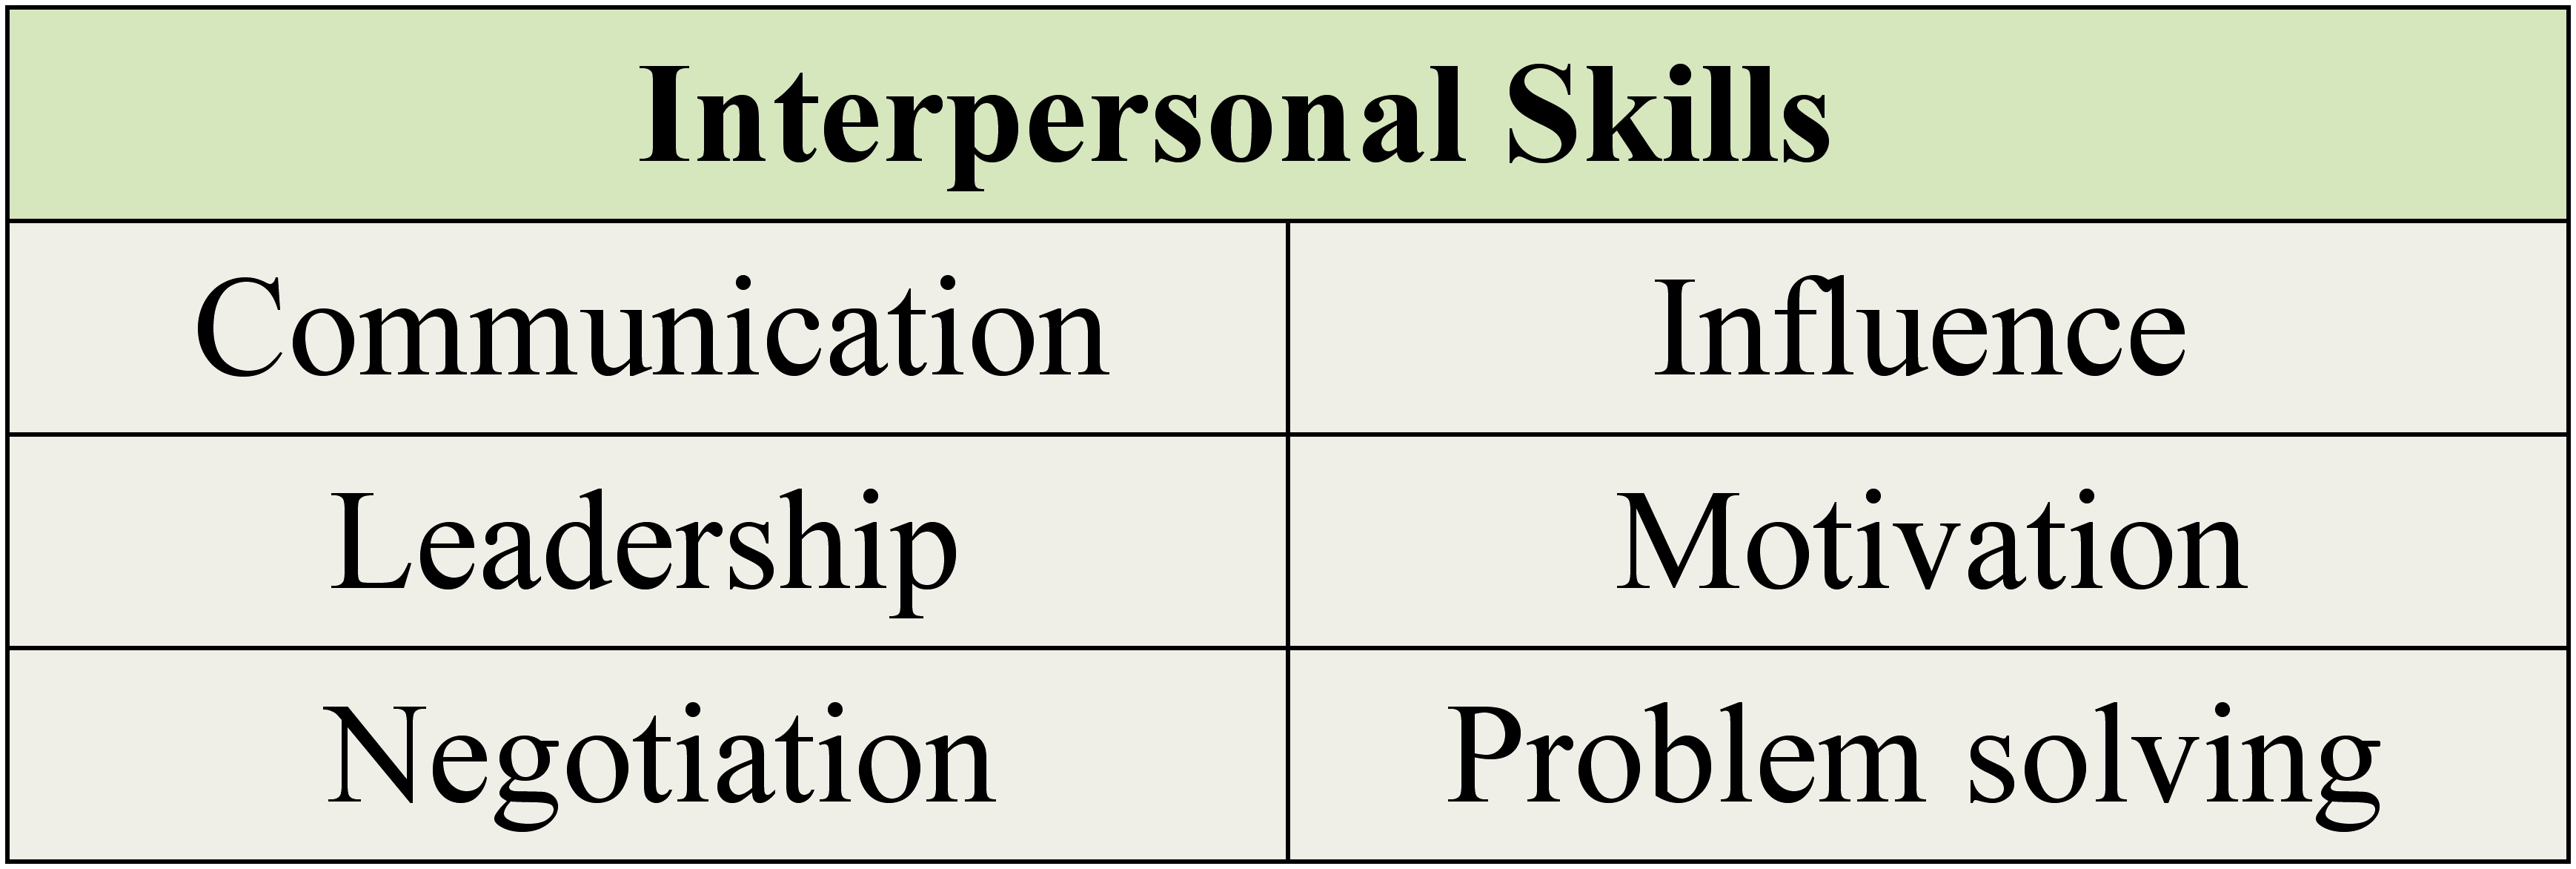 Interpersonal skills r...